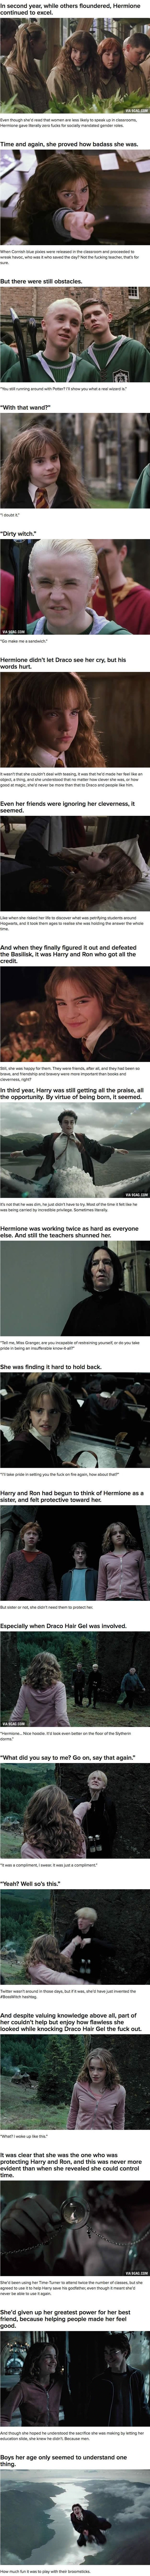 "If Hermione Were The Main Character In ""Harry Potter"" (Part 2 Of 5)"